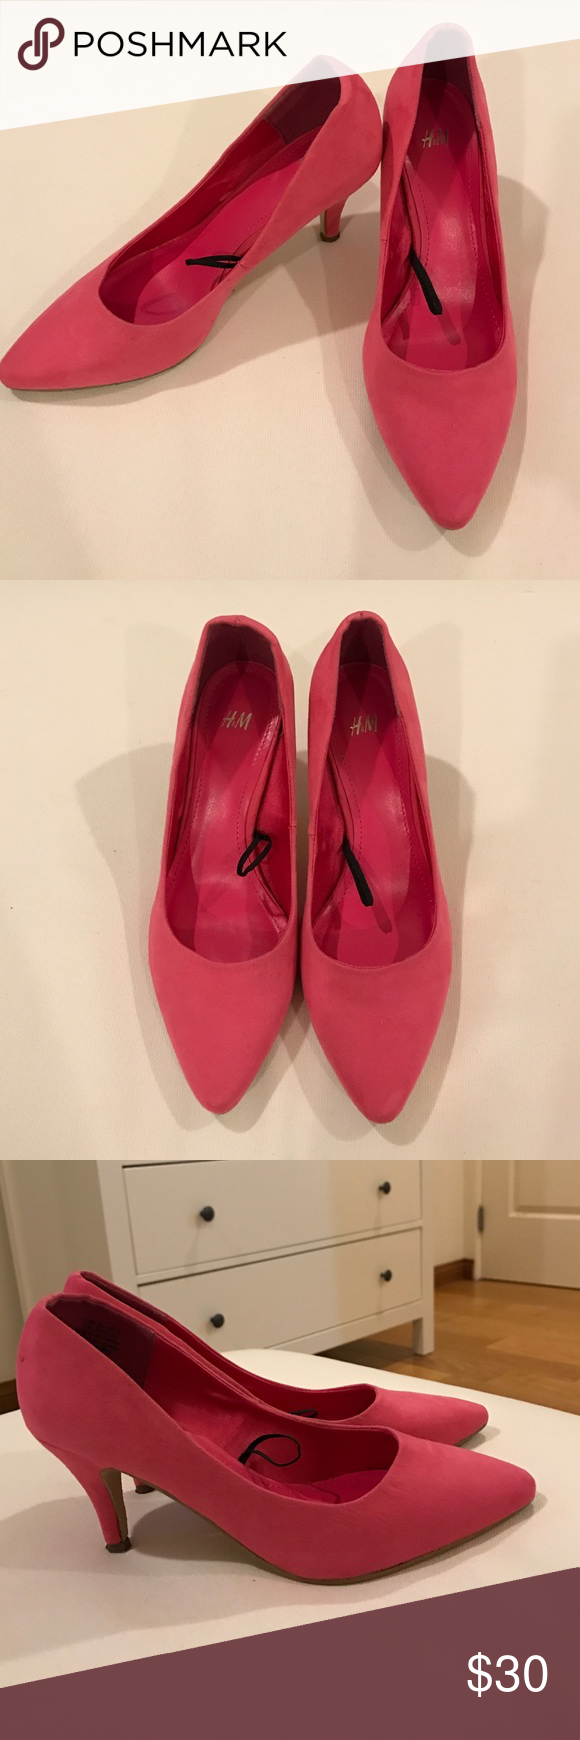 4e334a51f03 H M Barbie pink shoes with kitten heels